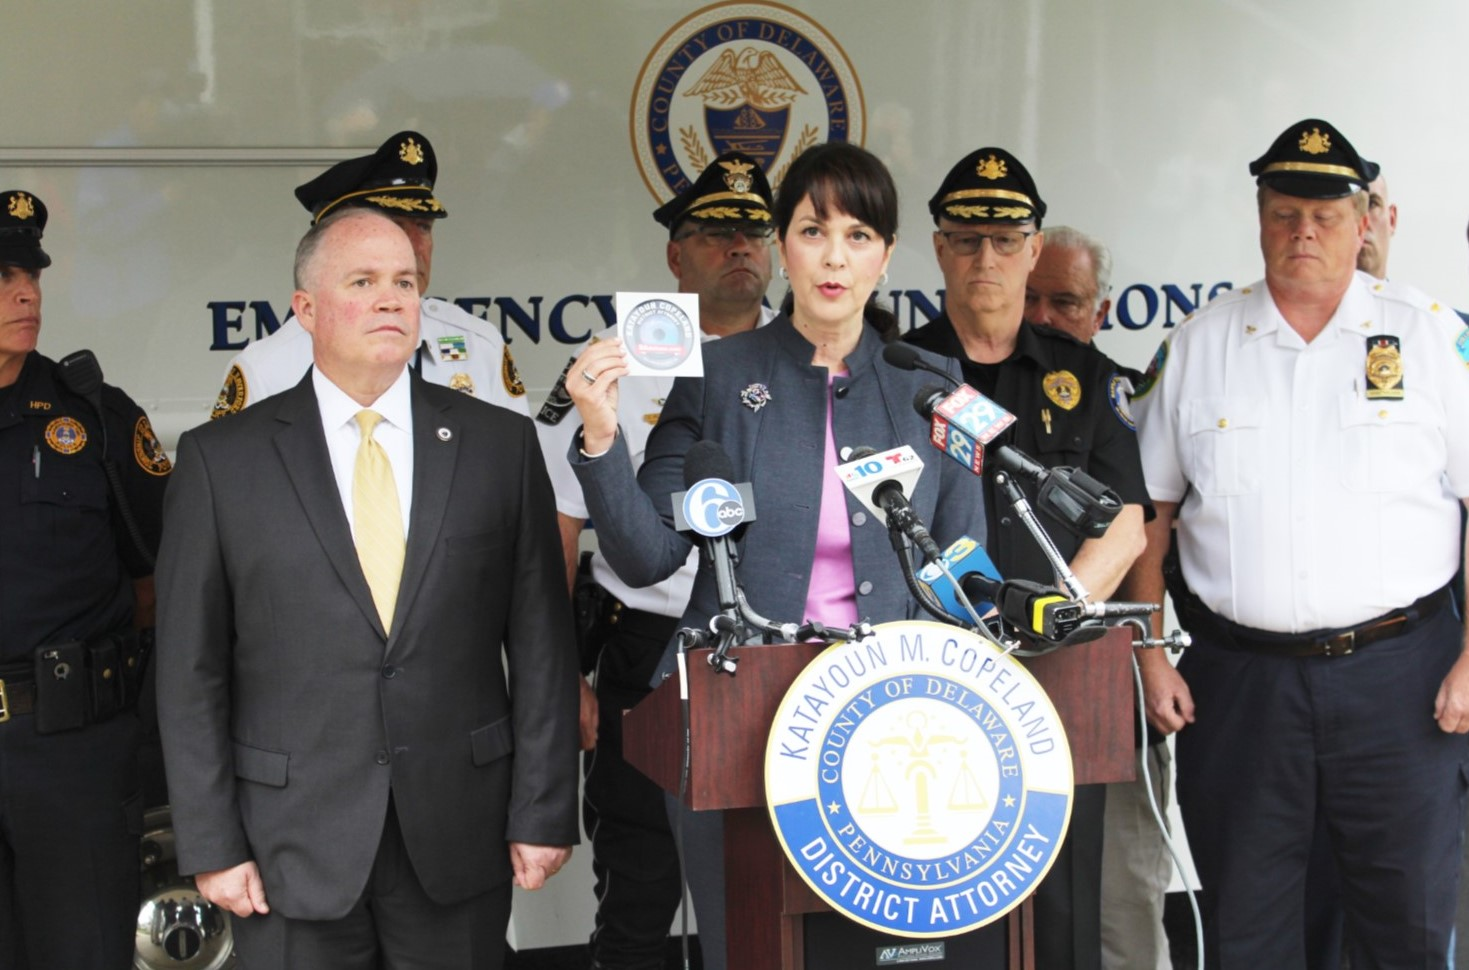 District Attorney's New Camera Program a Valuable Tool in Fight Against Crime